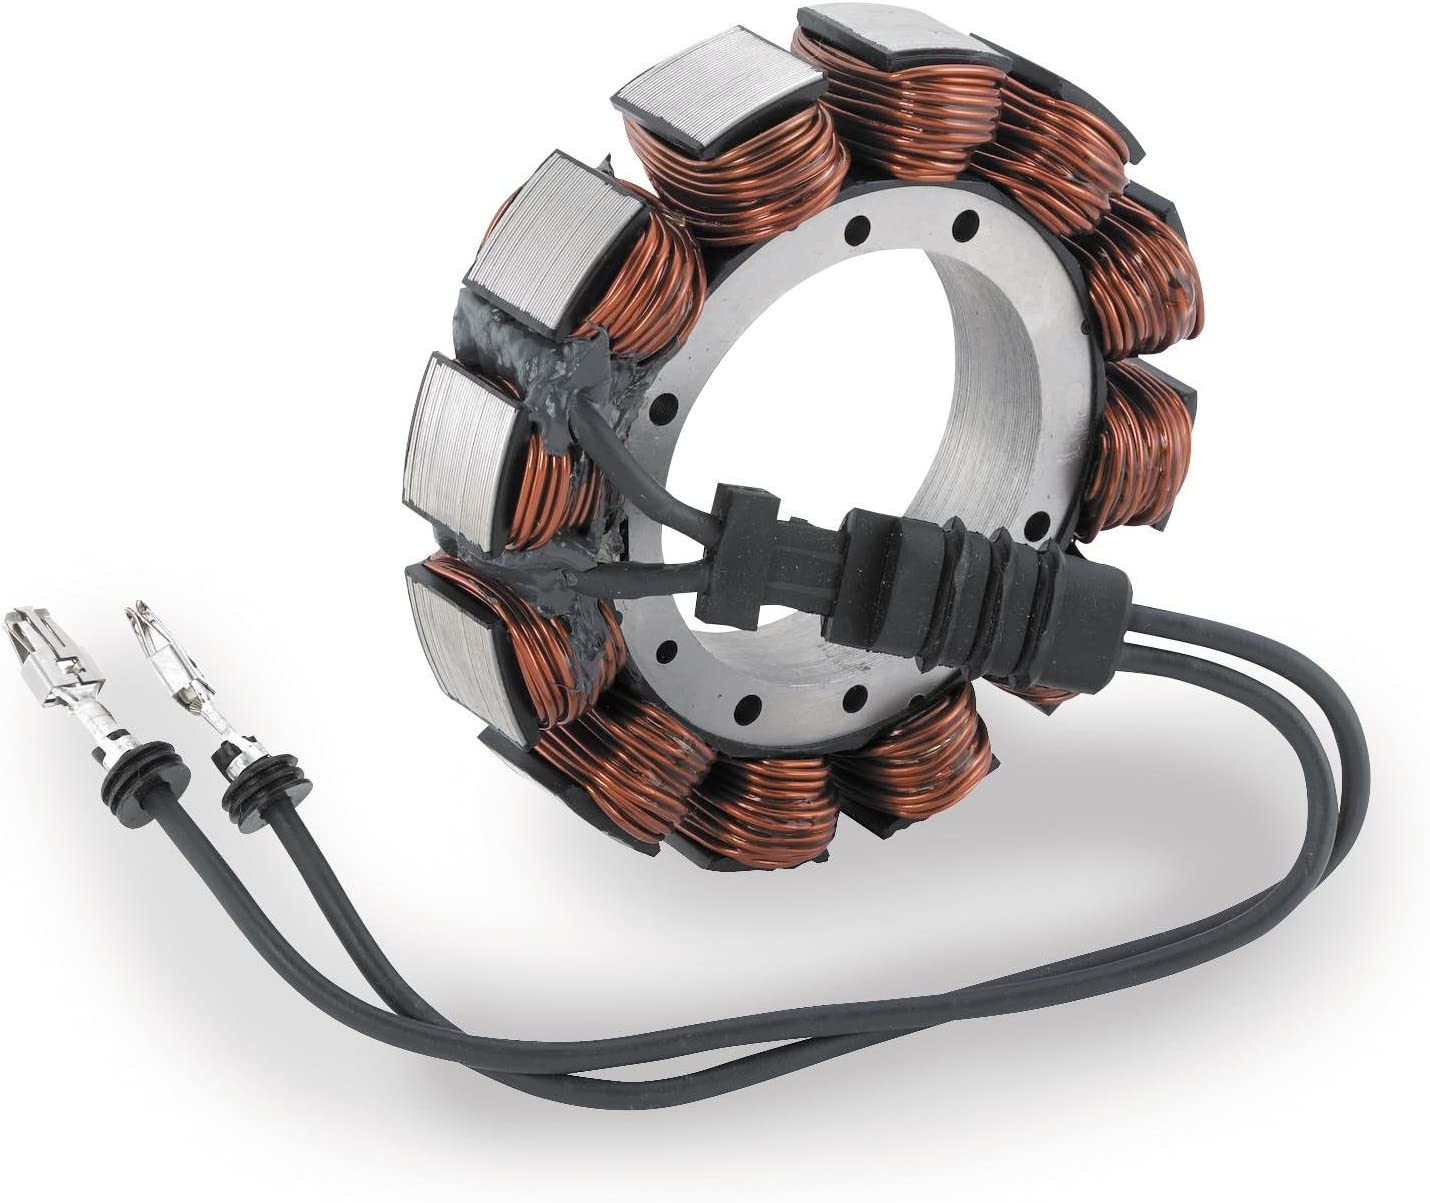 Cycle Electric 3-Phase Stator CE-6011